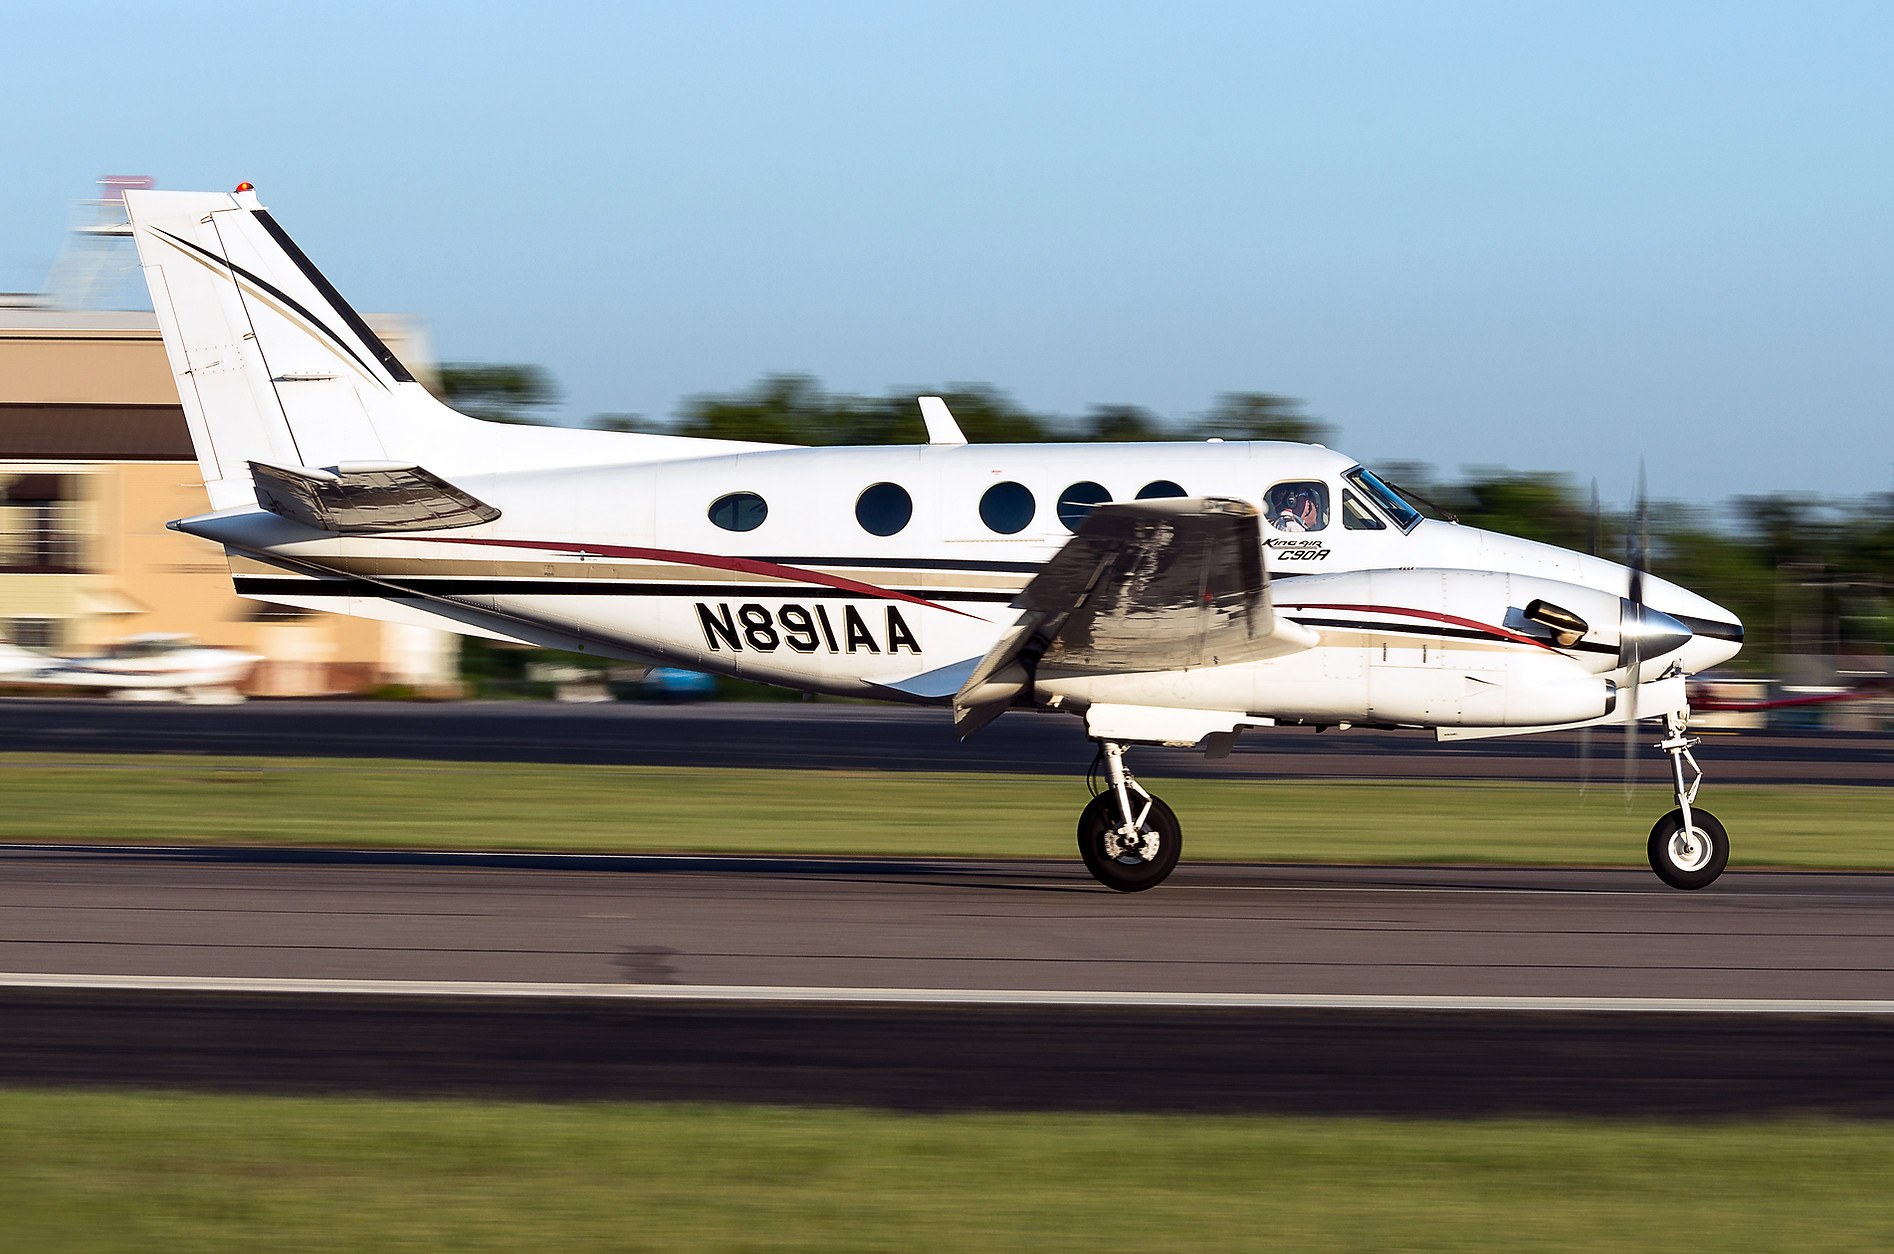 Kingair 90 Augusta Aviation Charter service